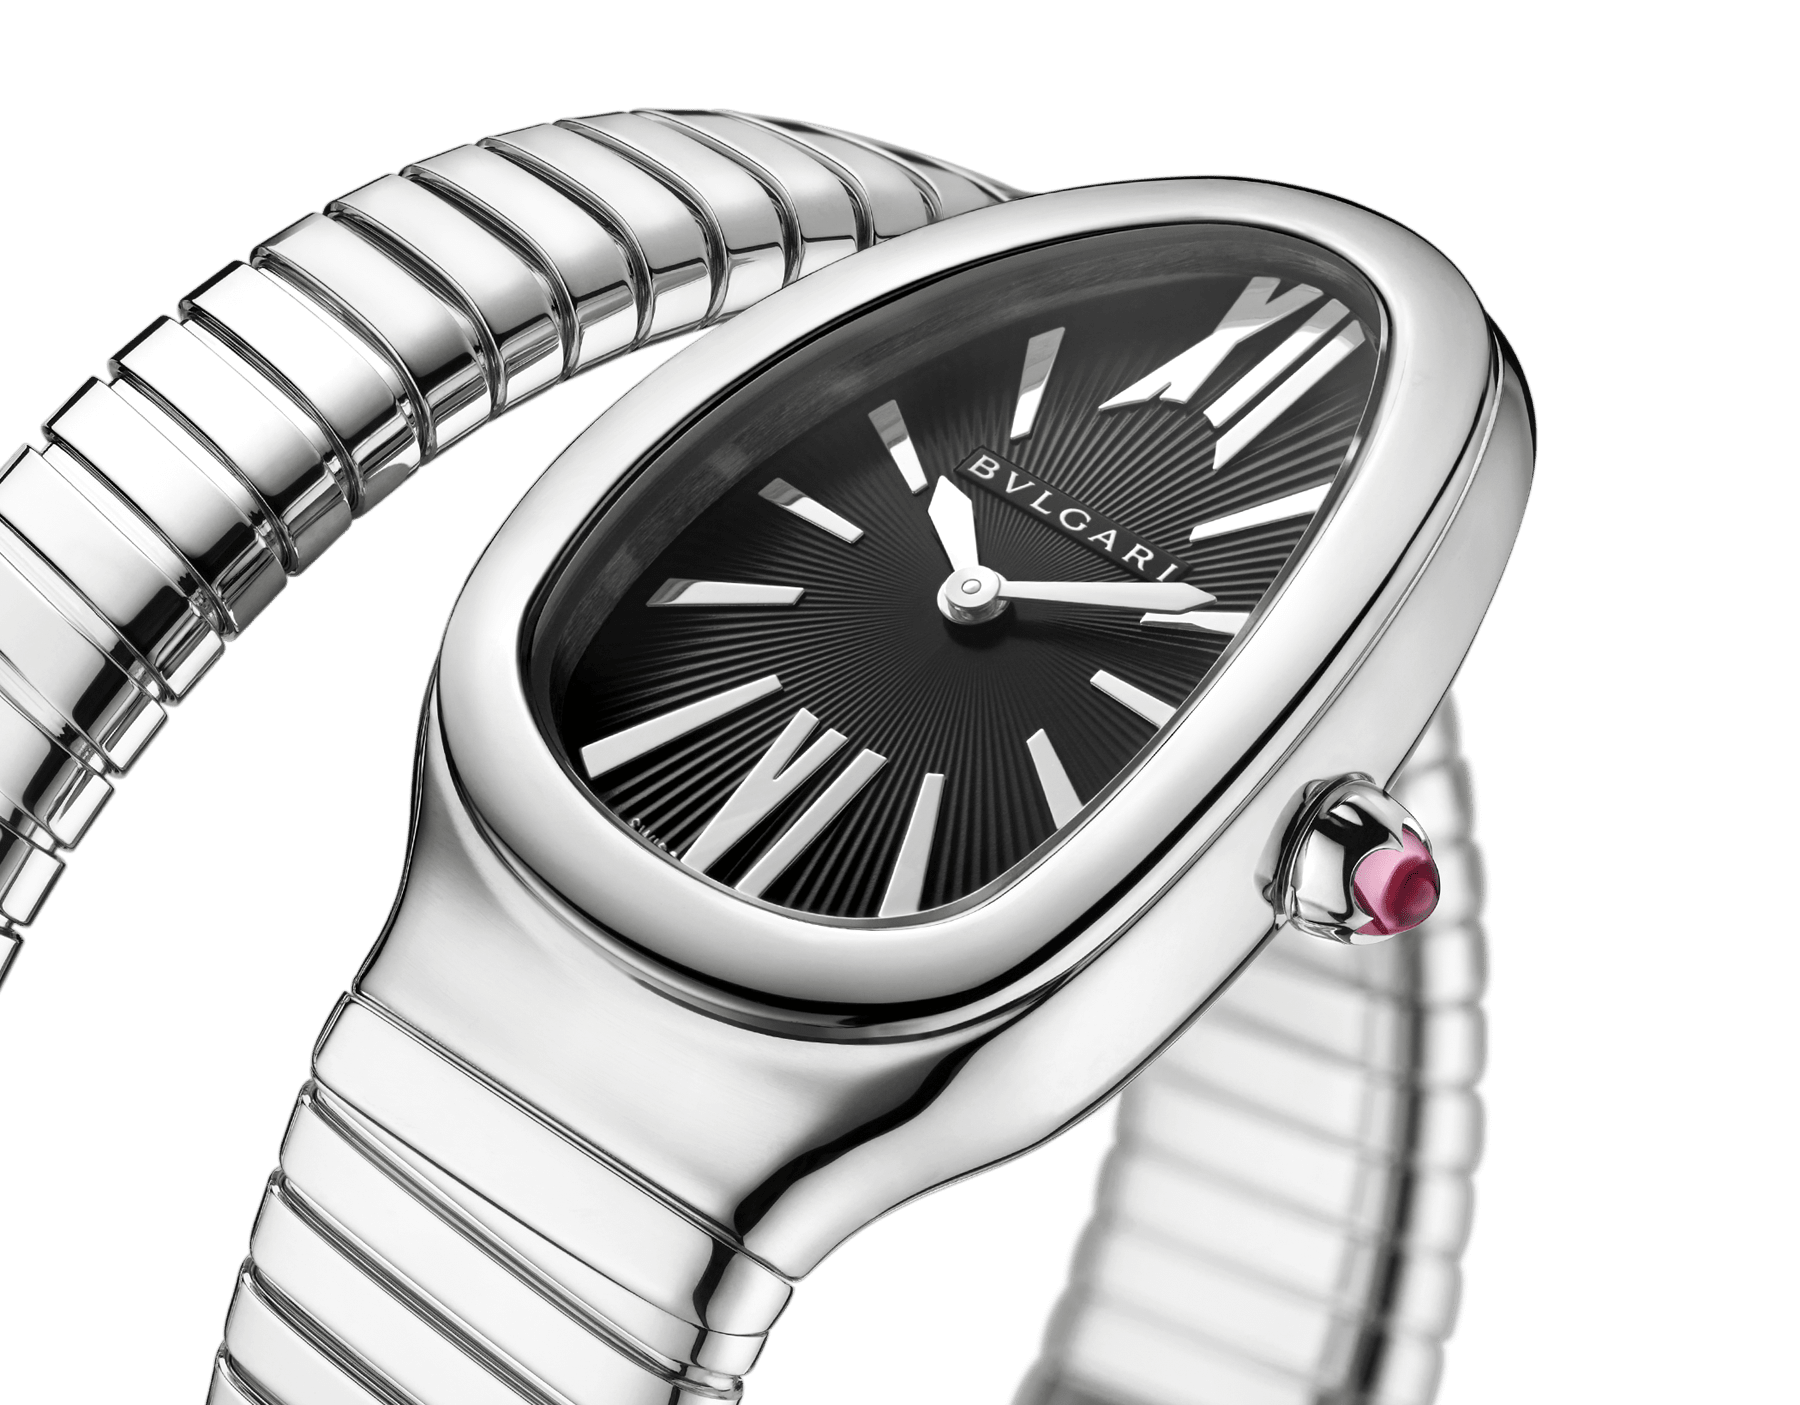 Serpenti Tubogas single spiral watch in stainless steel case and bracelet, with black opaline dial. SrpntTubogas-black-dial2 image 3